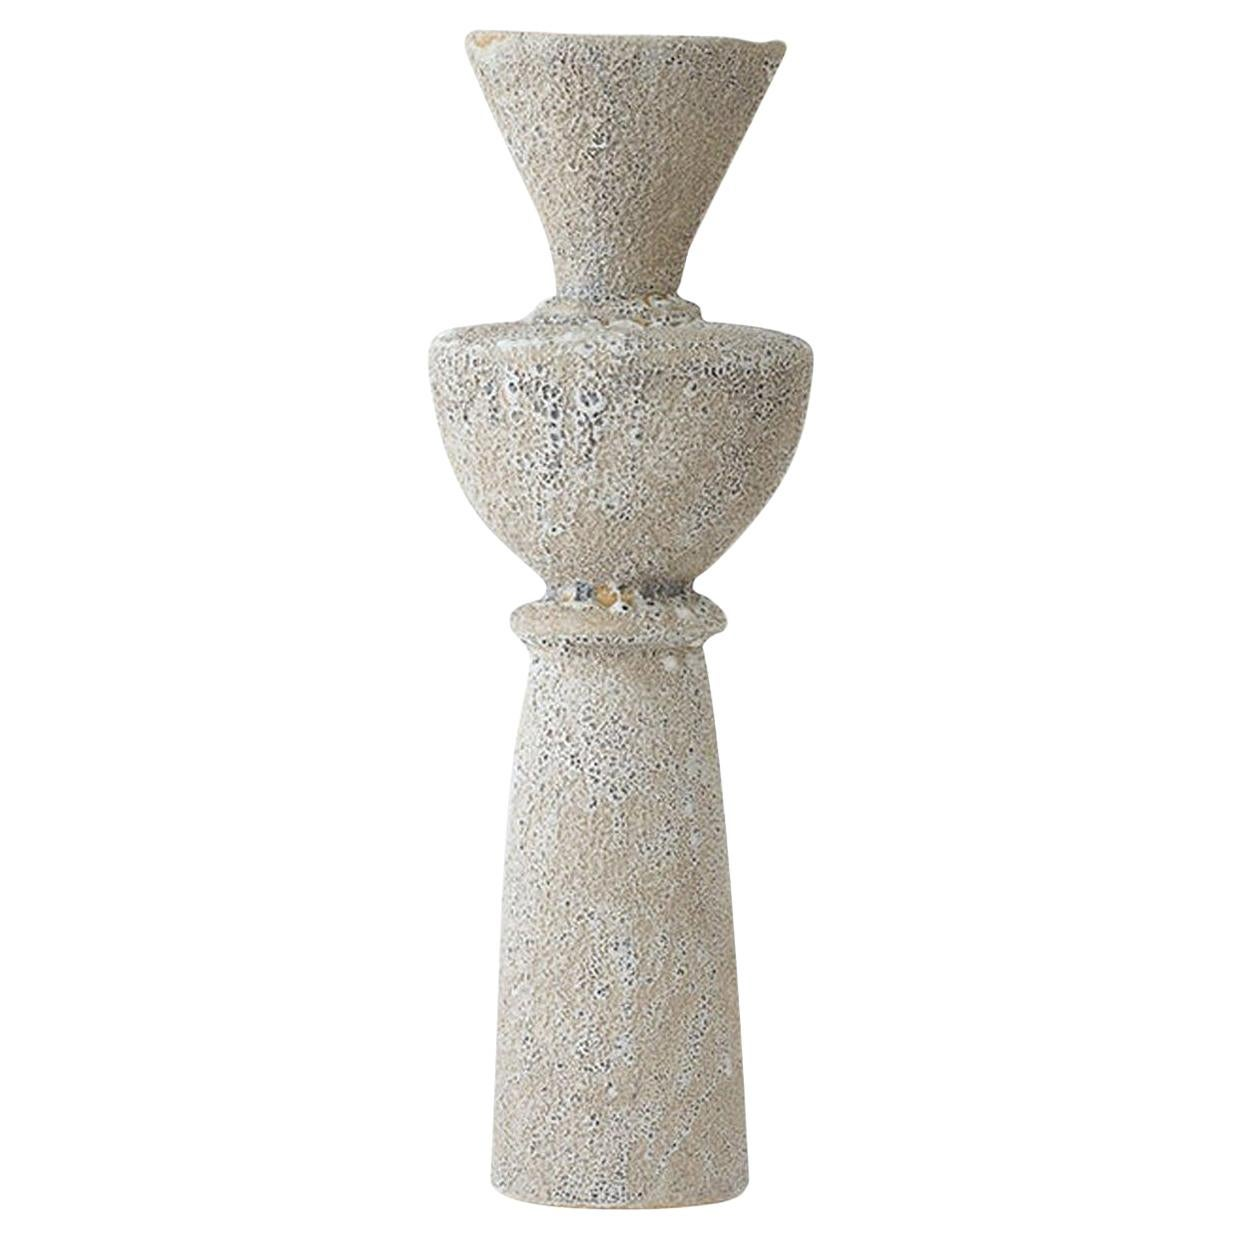 Greco Roman Vases and Vessels